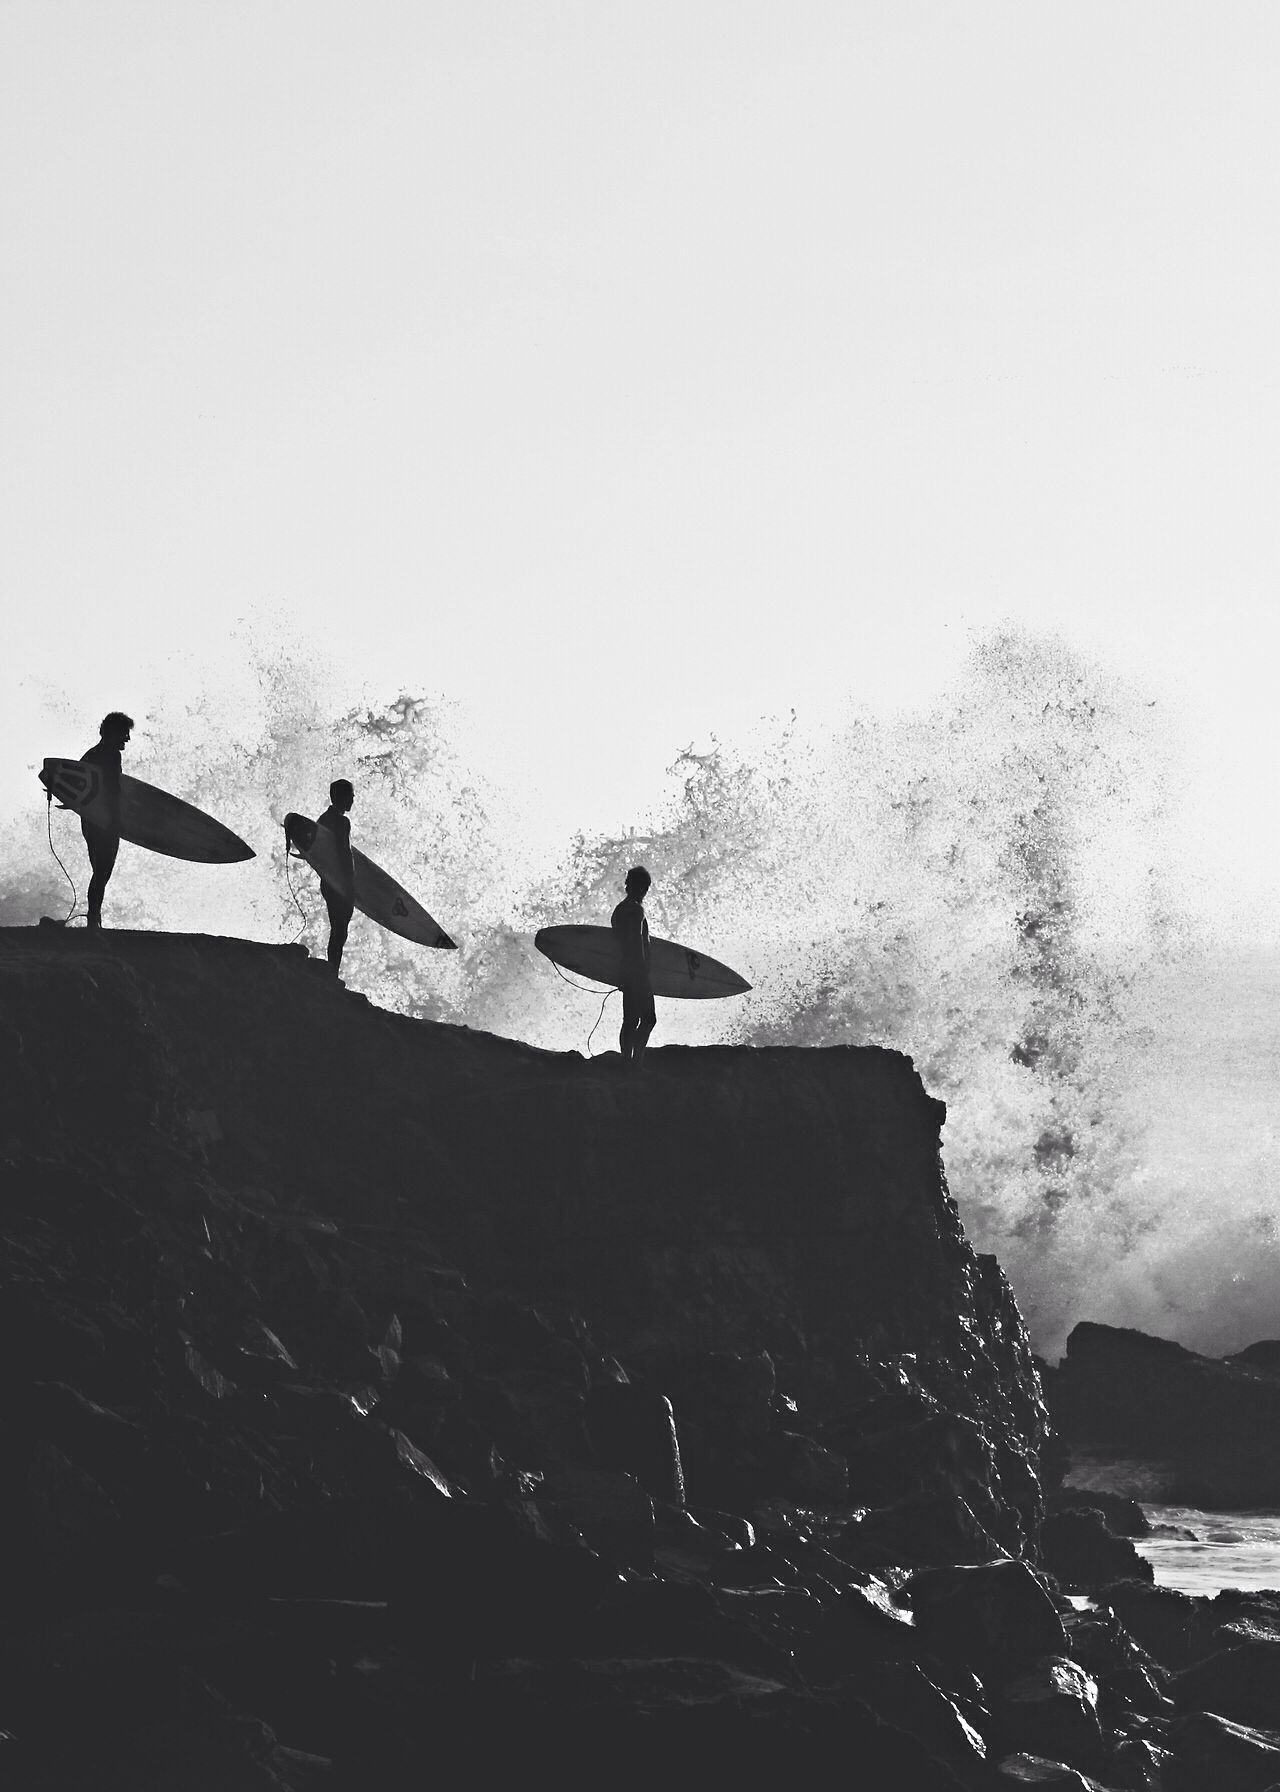 Three surfers on cliff black and white photography art ✧✧ b